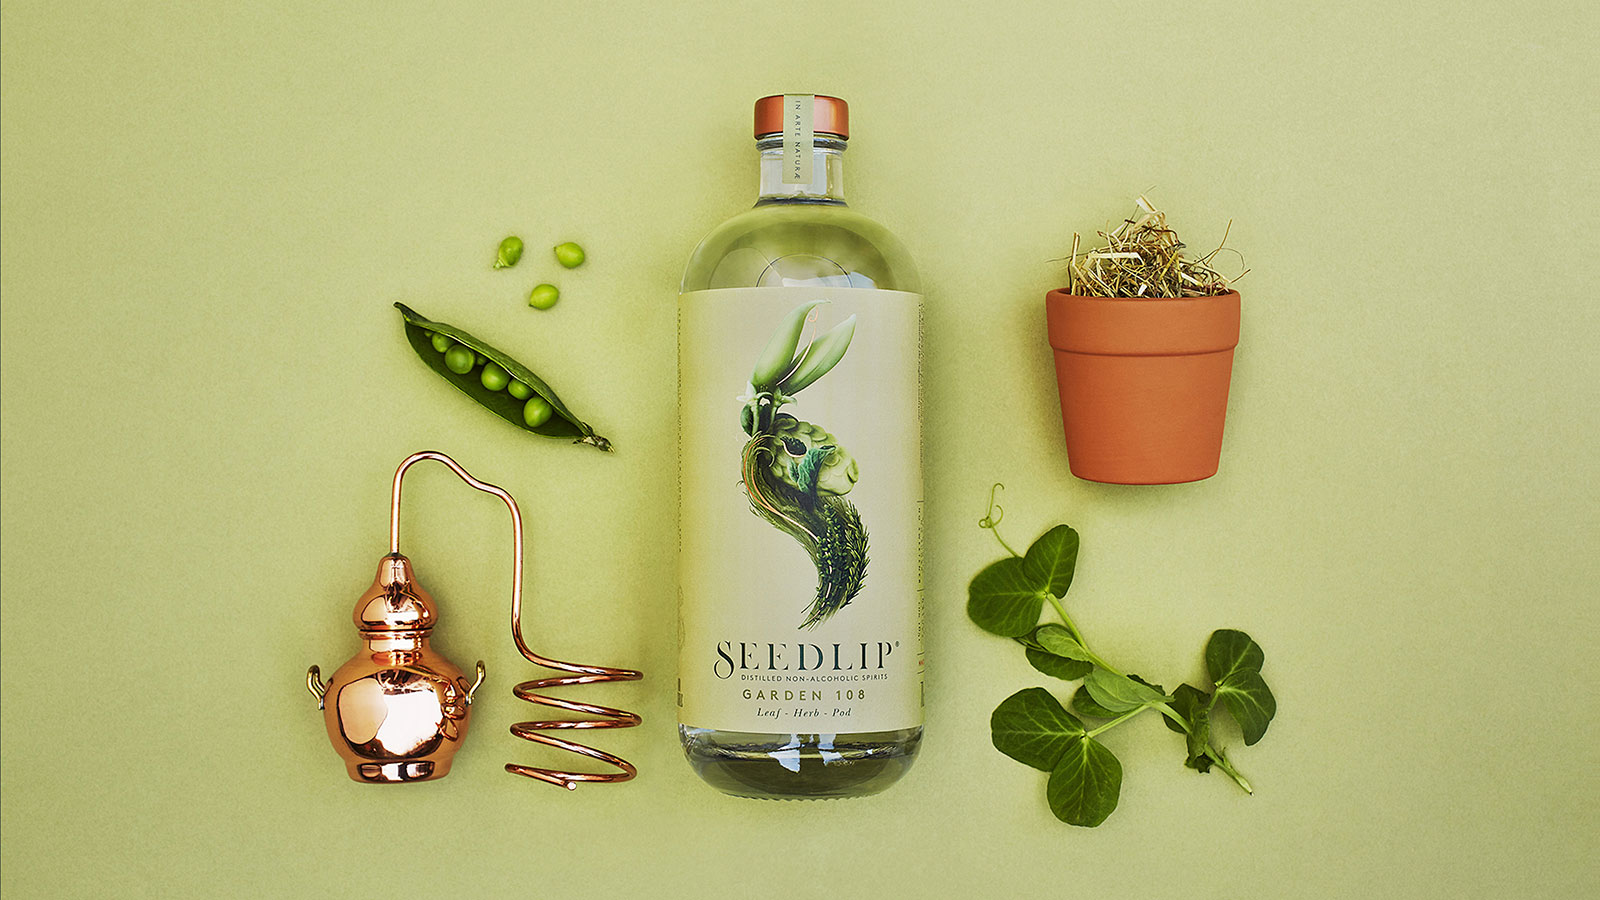 This Non-Alcoholic Spirit Is Behind the Bar at Many of the World's Best Restaurants